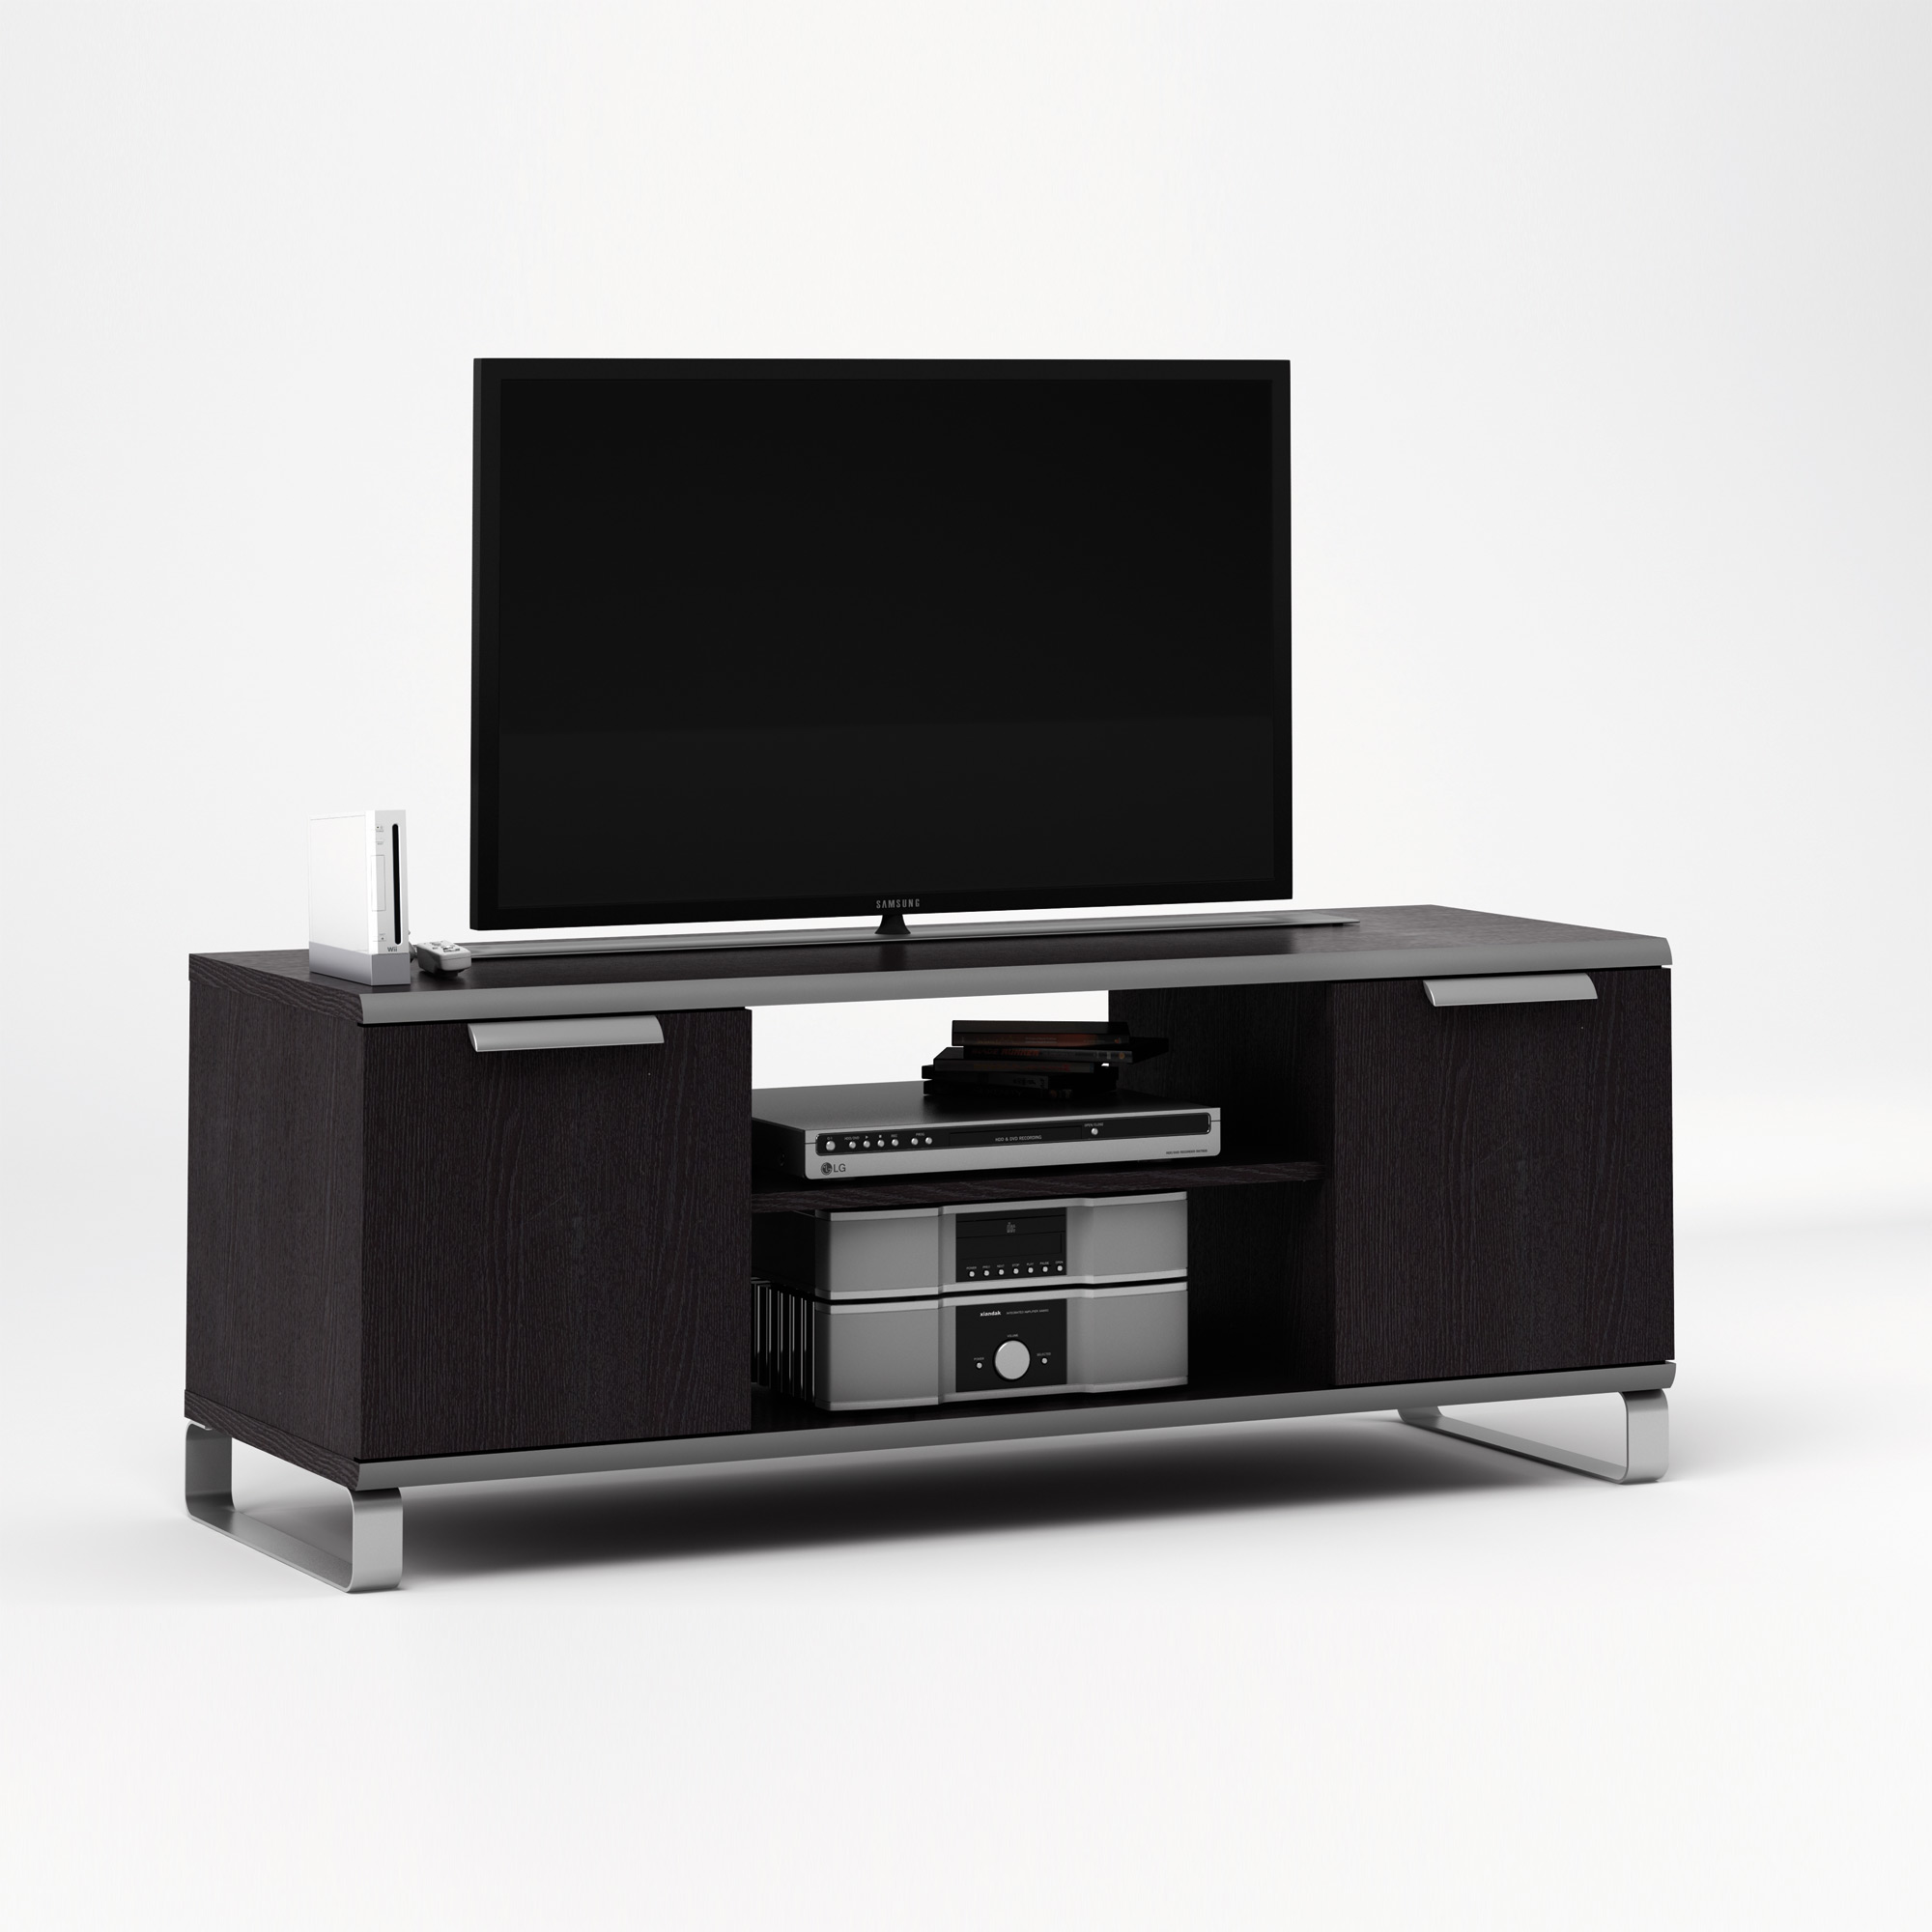 meuble tv grande hauteur id es de d coration int rieure french decor. Black Bedroom Furniture Sets. Home Design Ideas